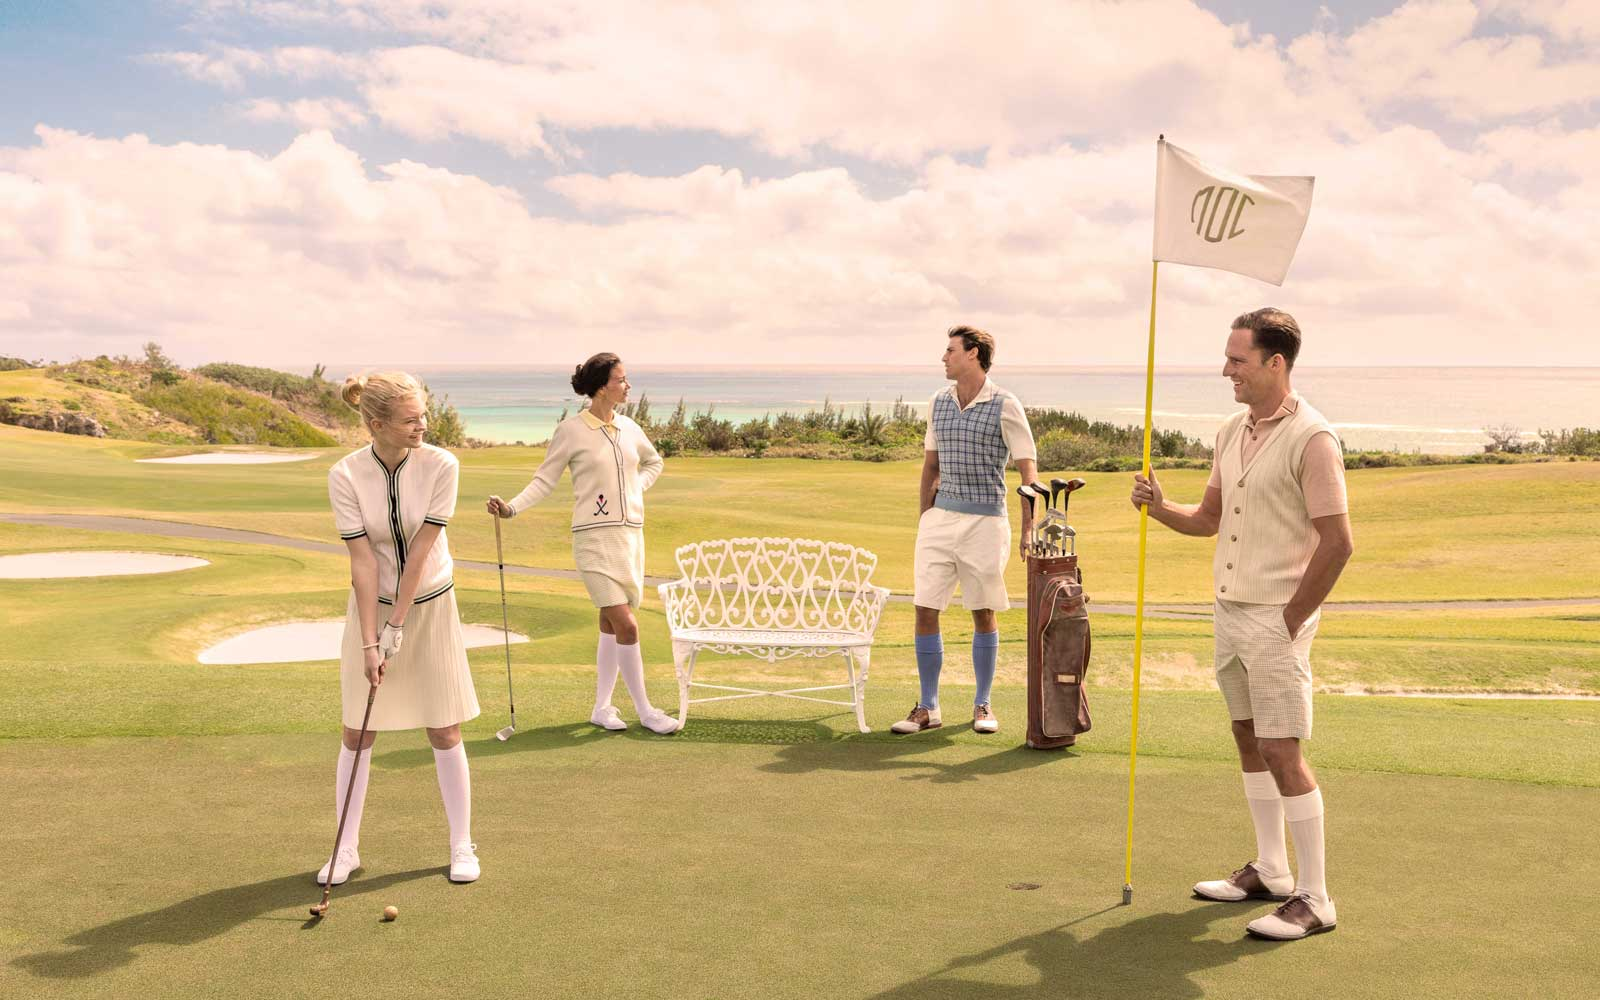 Golfing enthusiasts will enjoy the Mid Ocean Club.